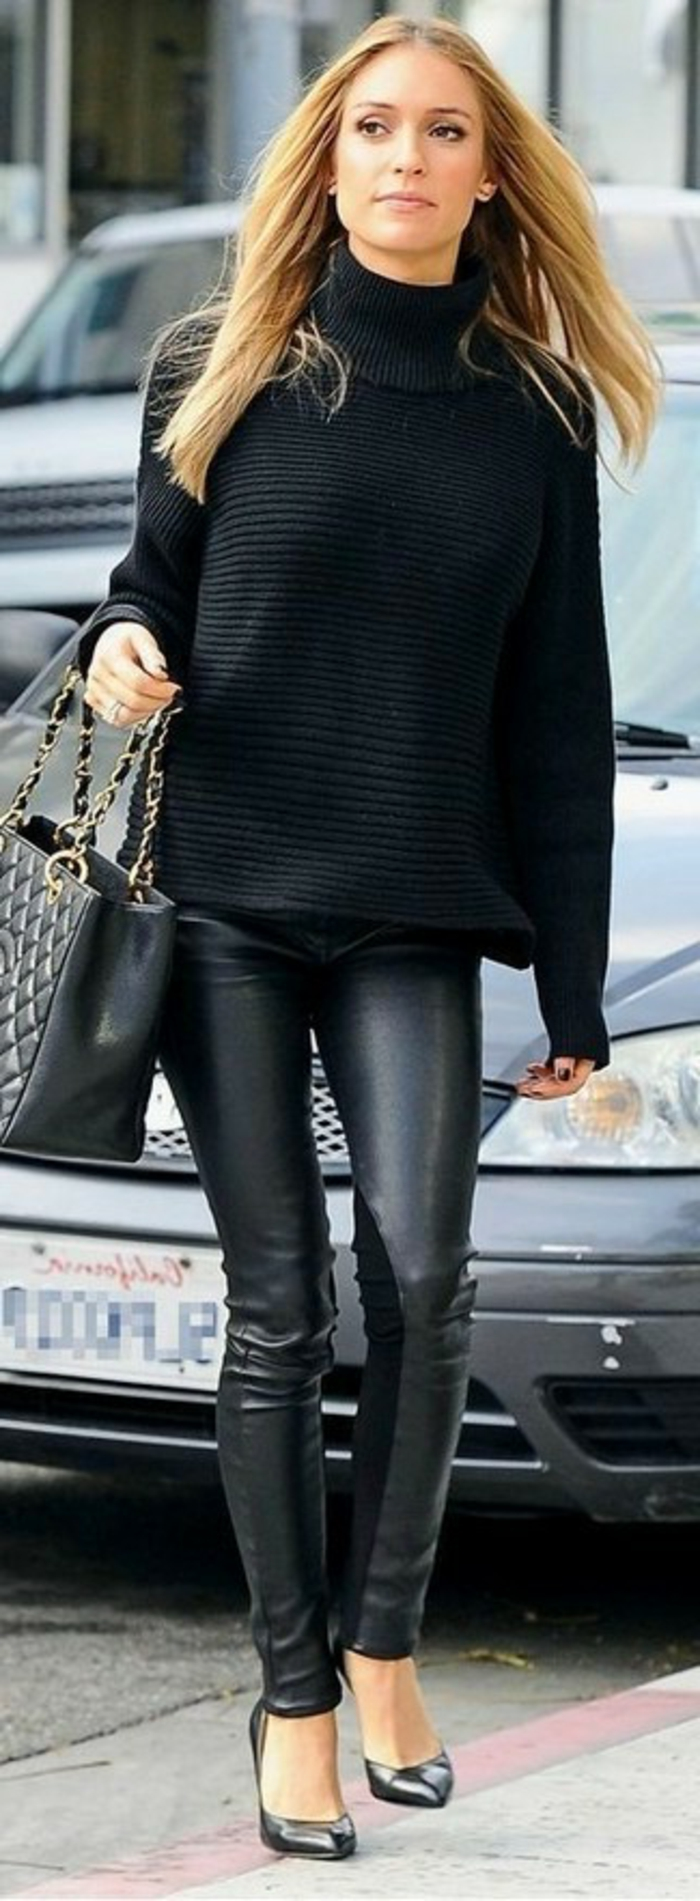 women's business attire, woman wearing black chunky turtleneck sweater, black leather skinny trousers and black high-heels, holding black leather bag